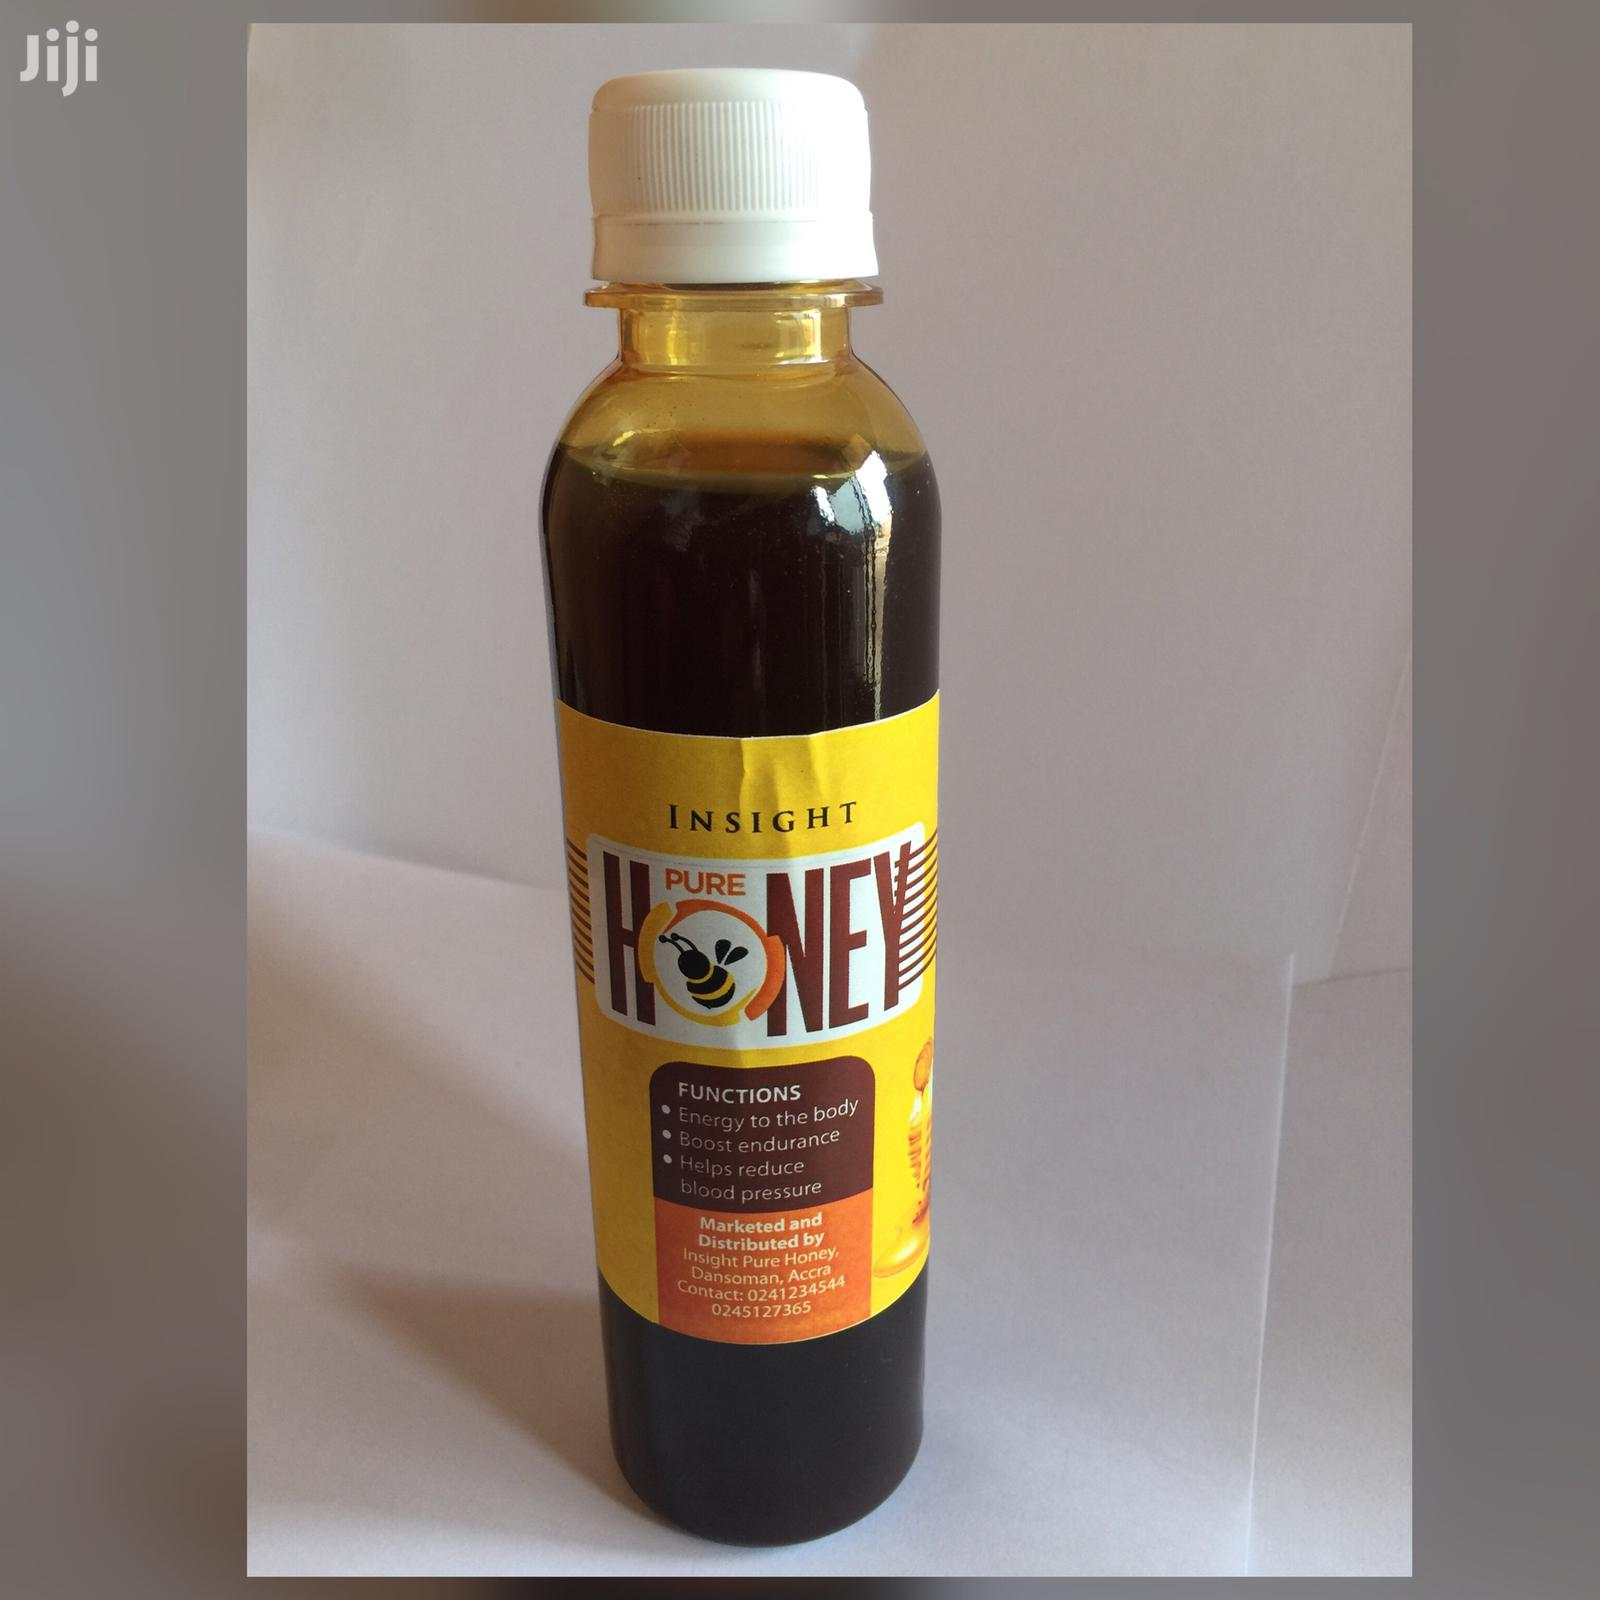 Insight Pure Honey | Meals & Drinks for sale in Dansoman, Greater Accra, Ghana